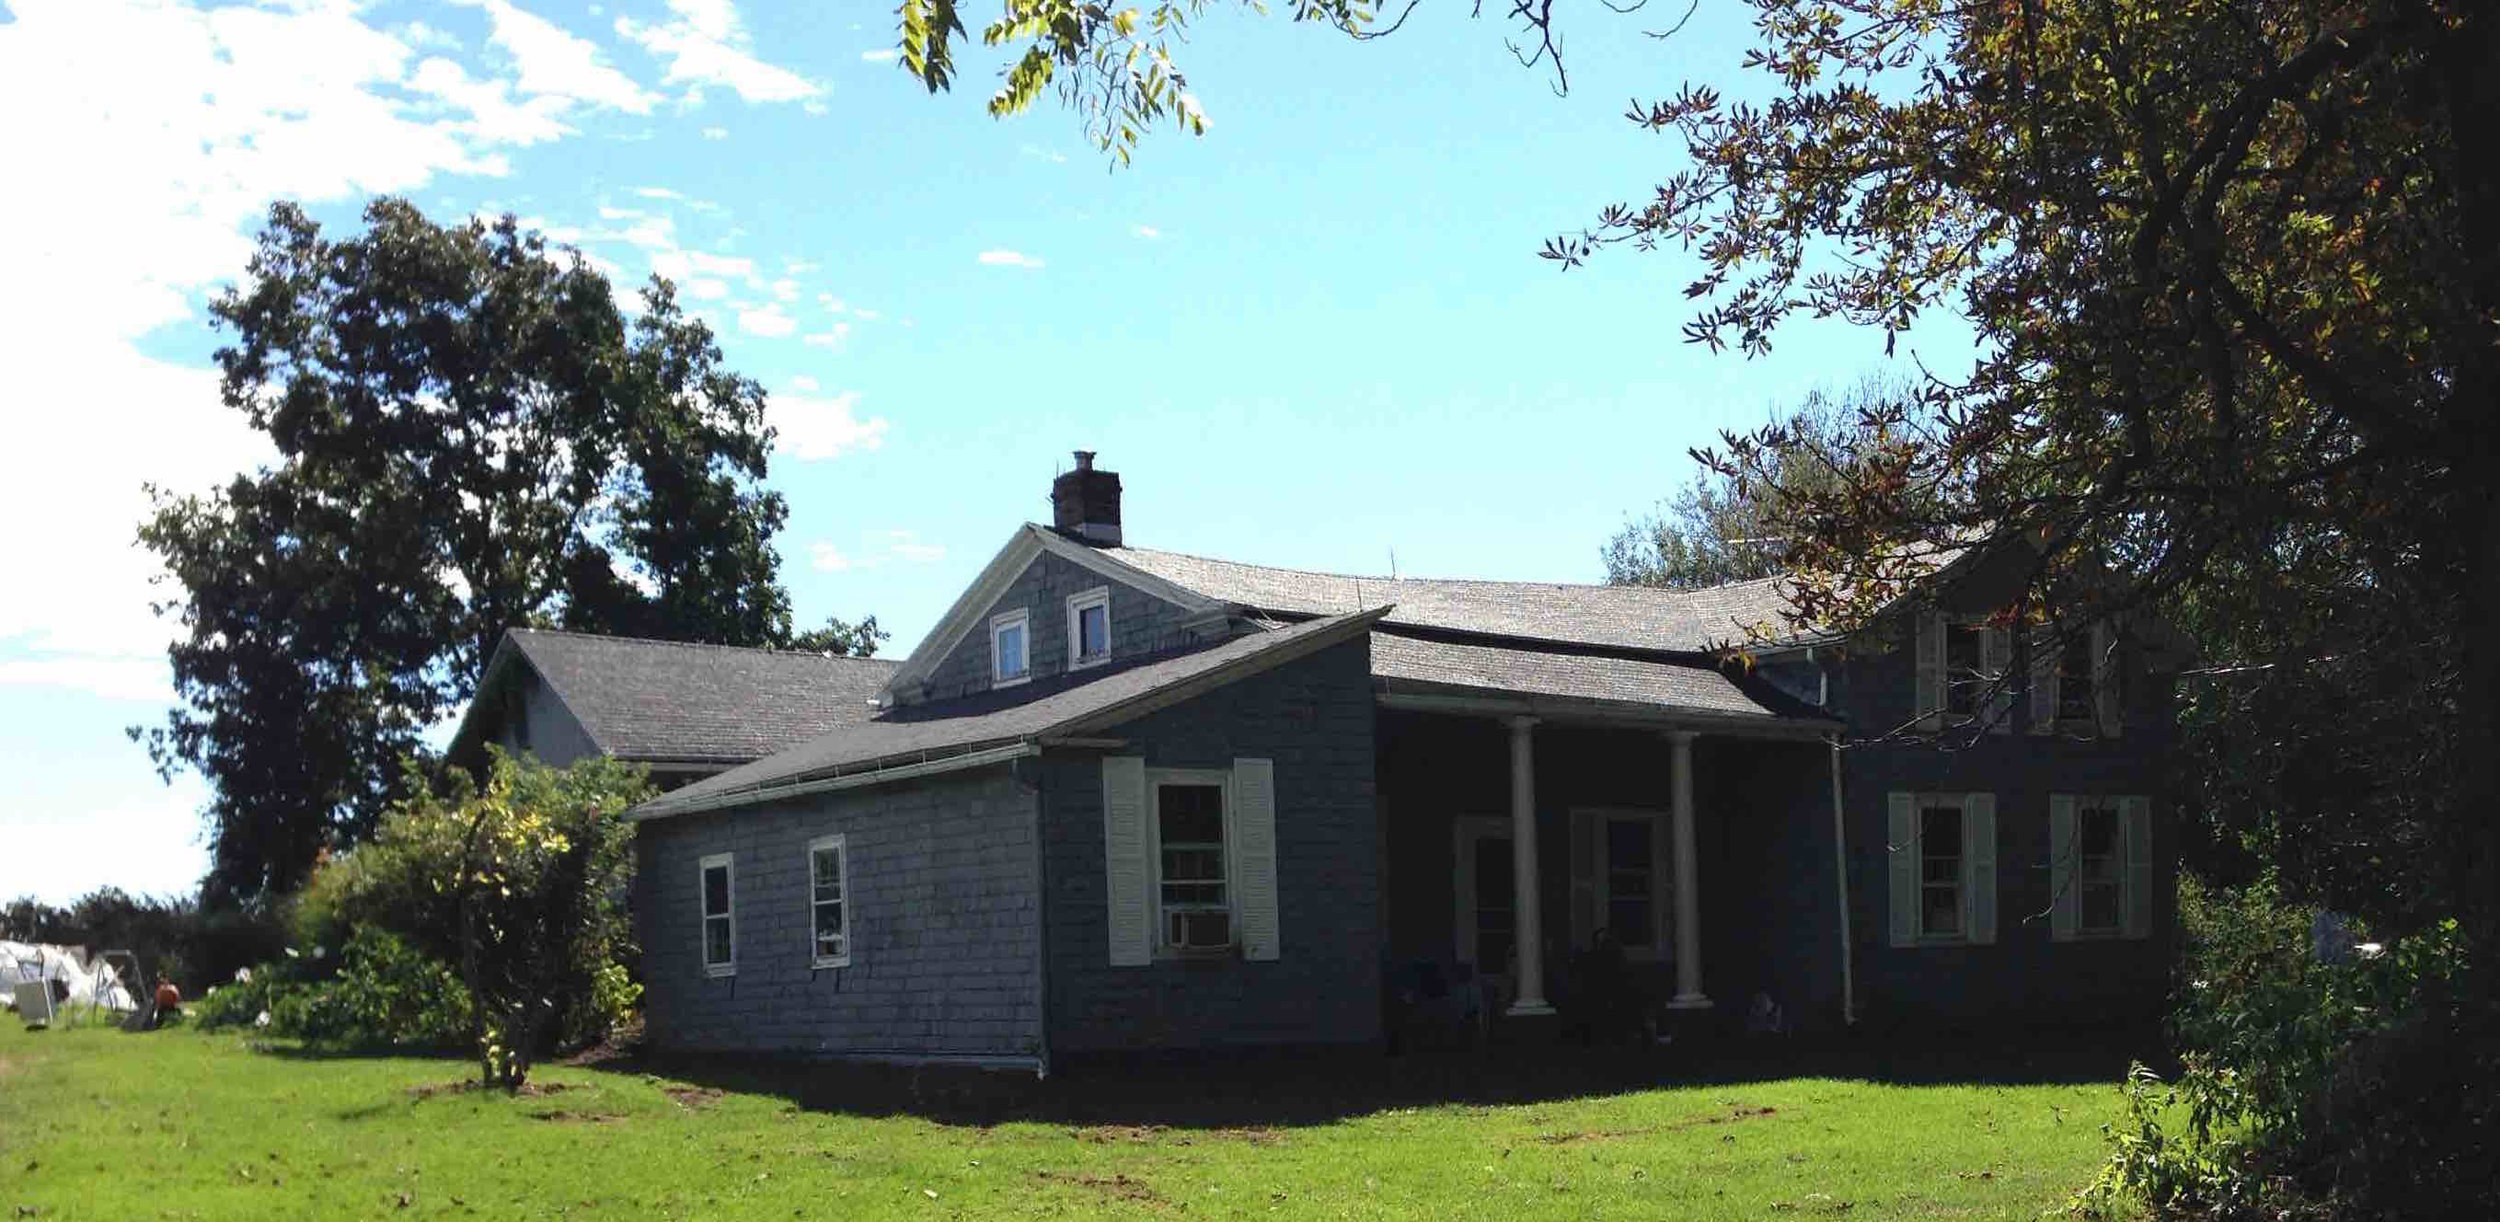 The Wilbur Farmhouse in Rush, NY, on a far nicer day than the day that Freda left.